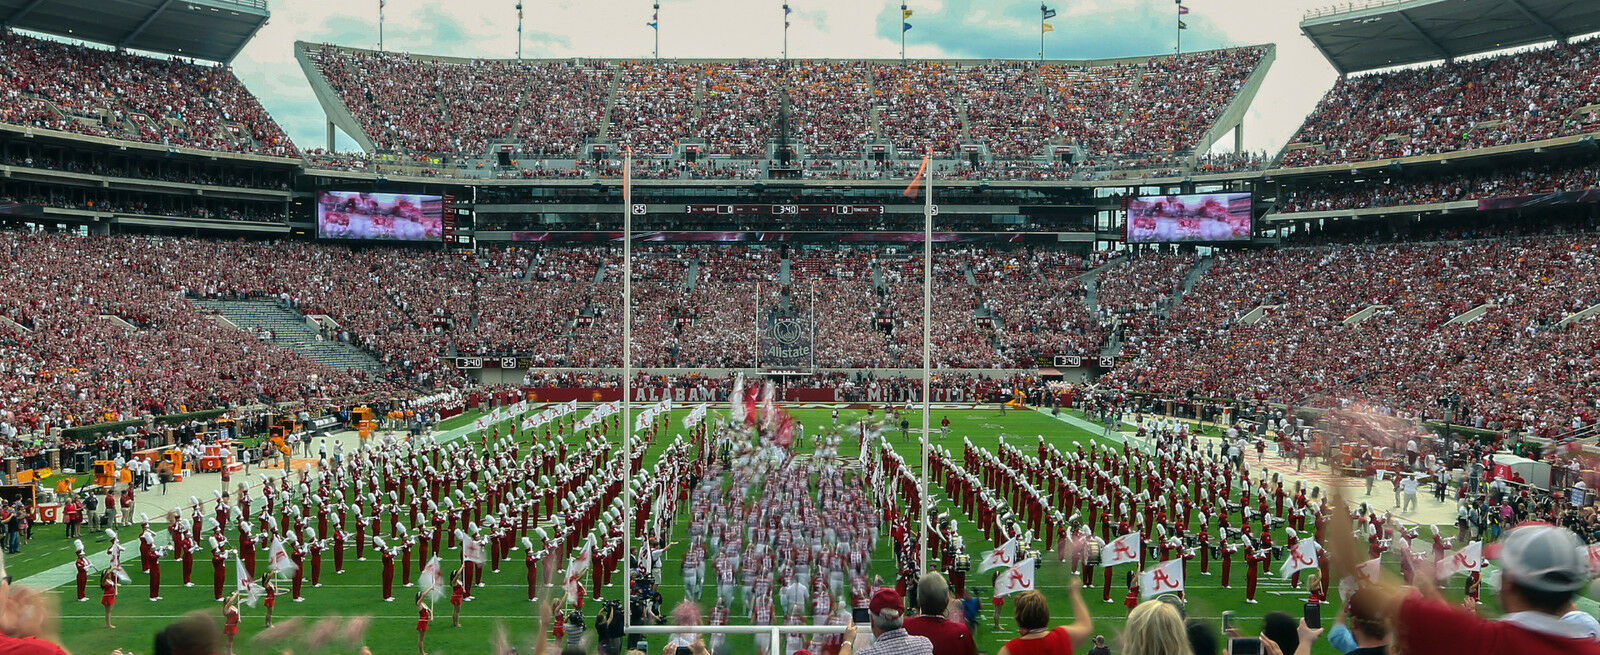 PARKING PASSES ONLY 2017 Alabama Crimson Tide Football Season